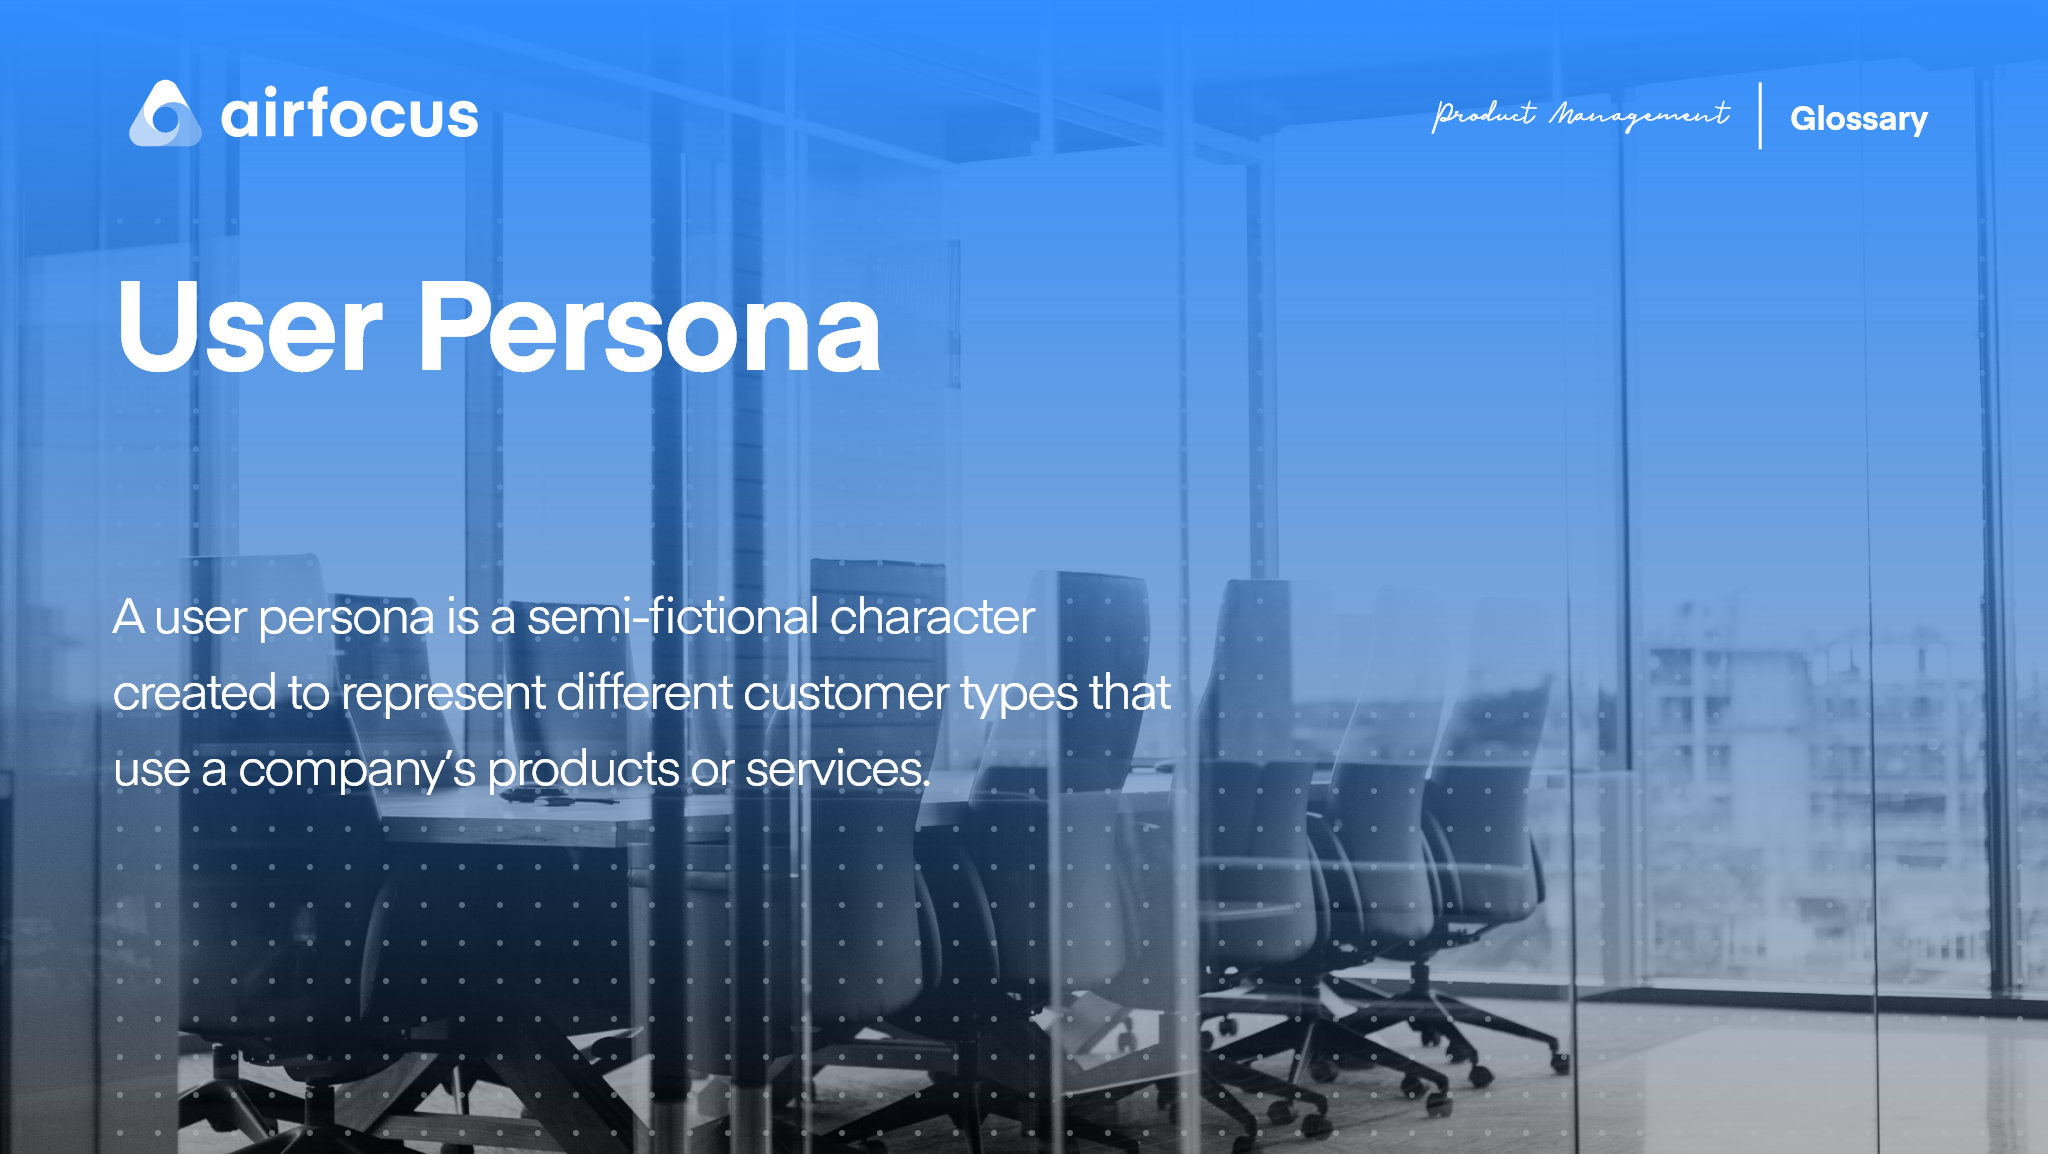 What Is a User Persona